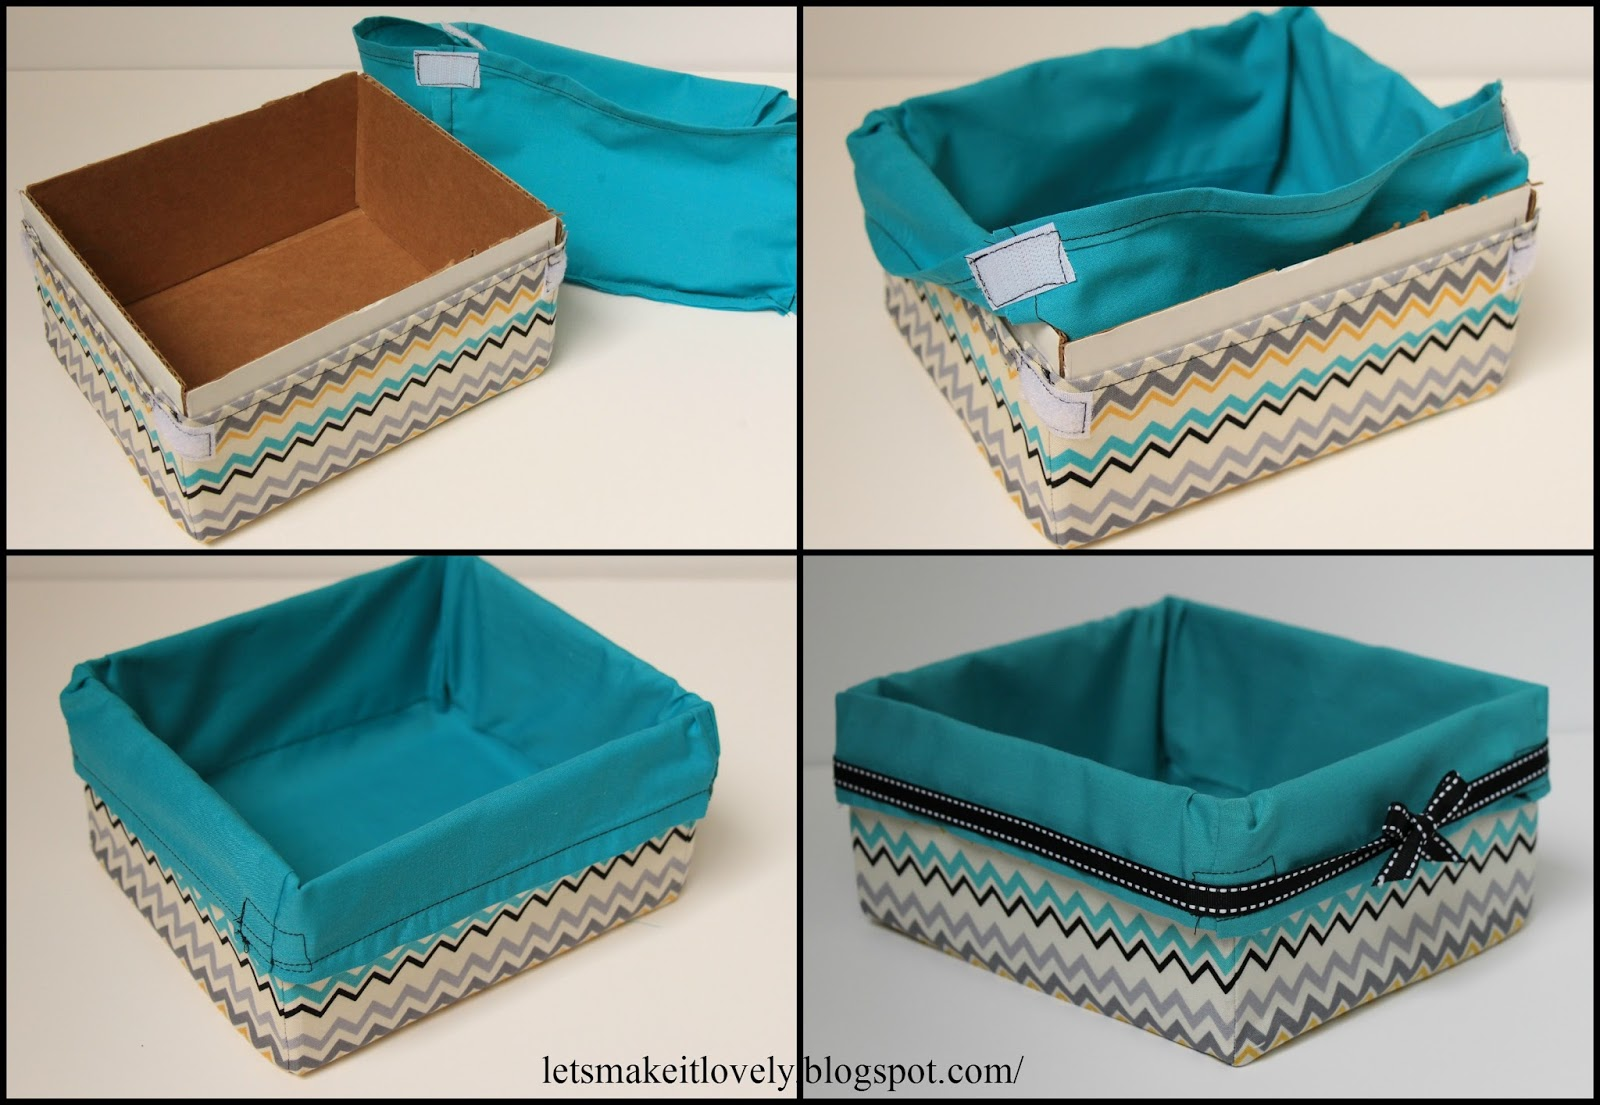 Upcycled Fabric Basket from Cartons